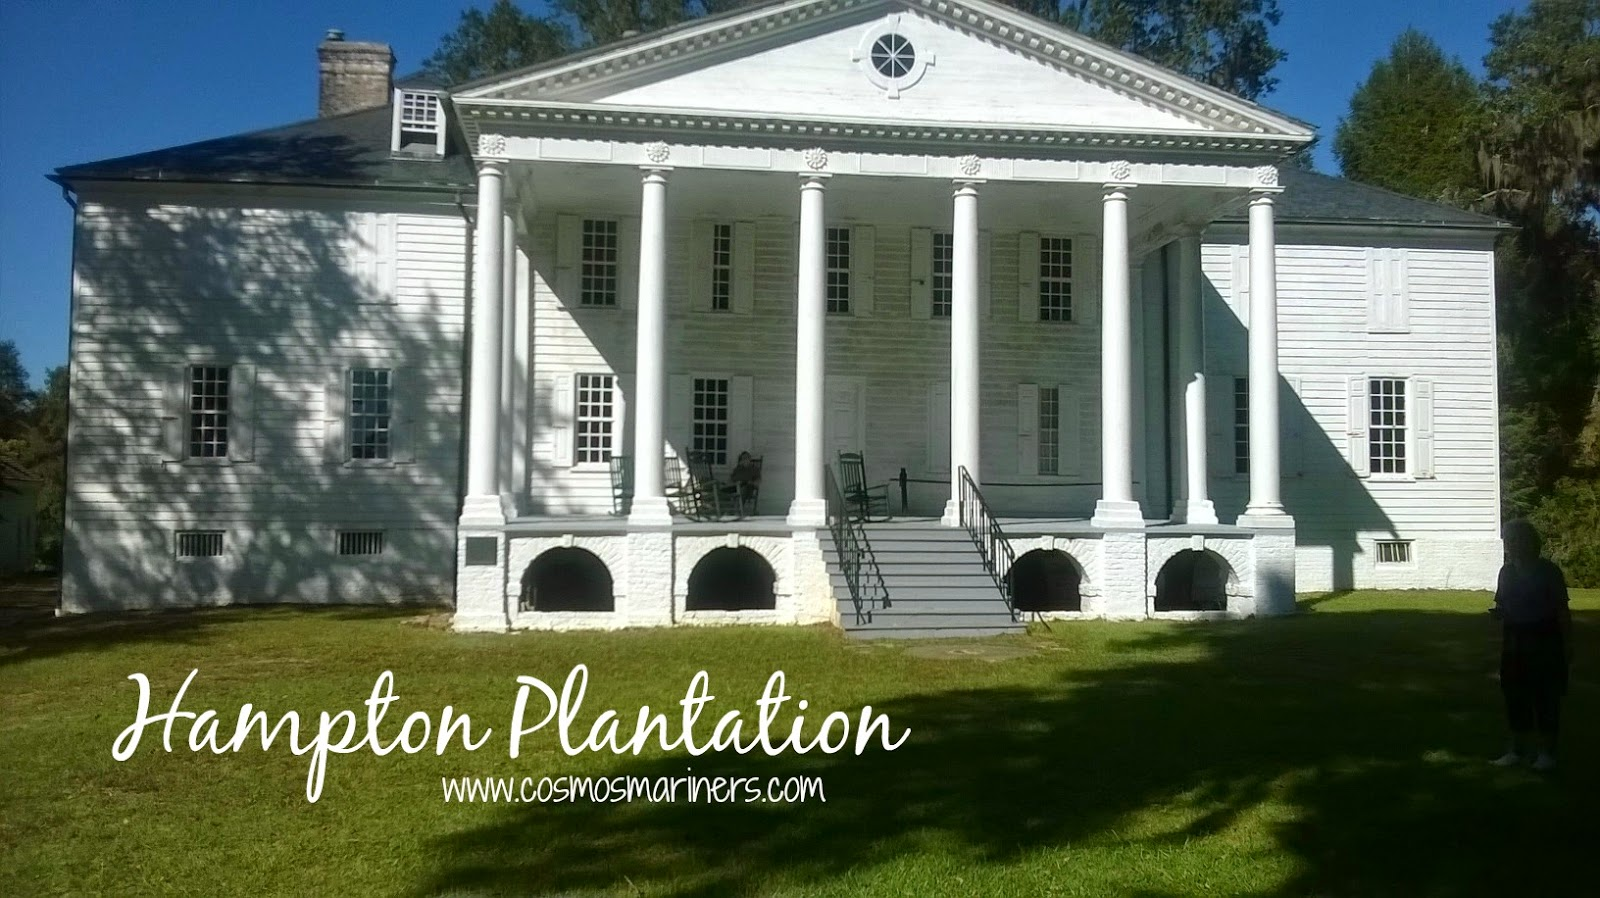 Hampton Plantation, McClellanville, South Carolina | CosmosMariners.com